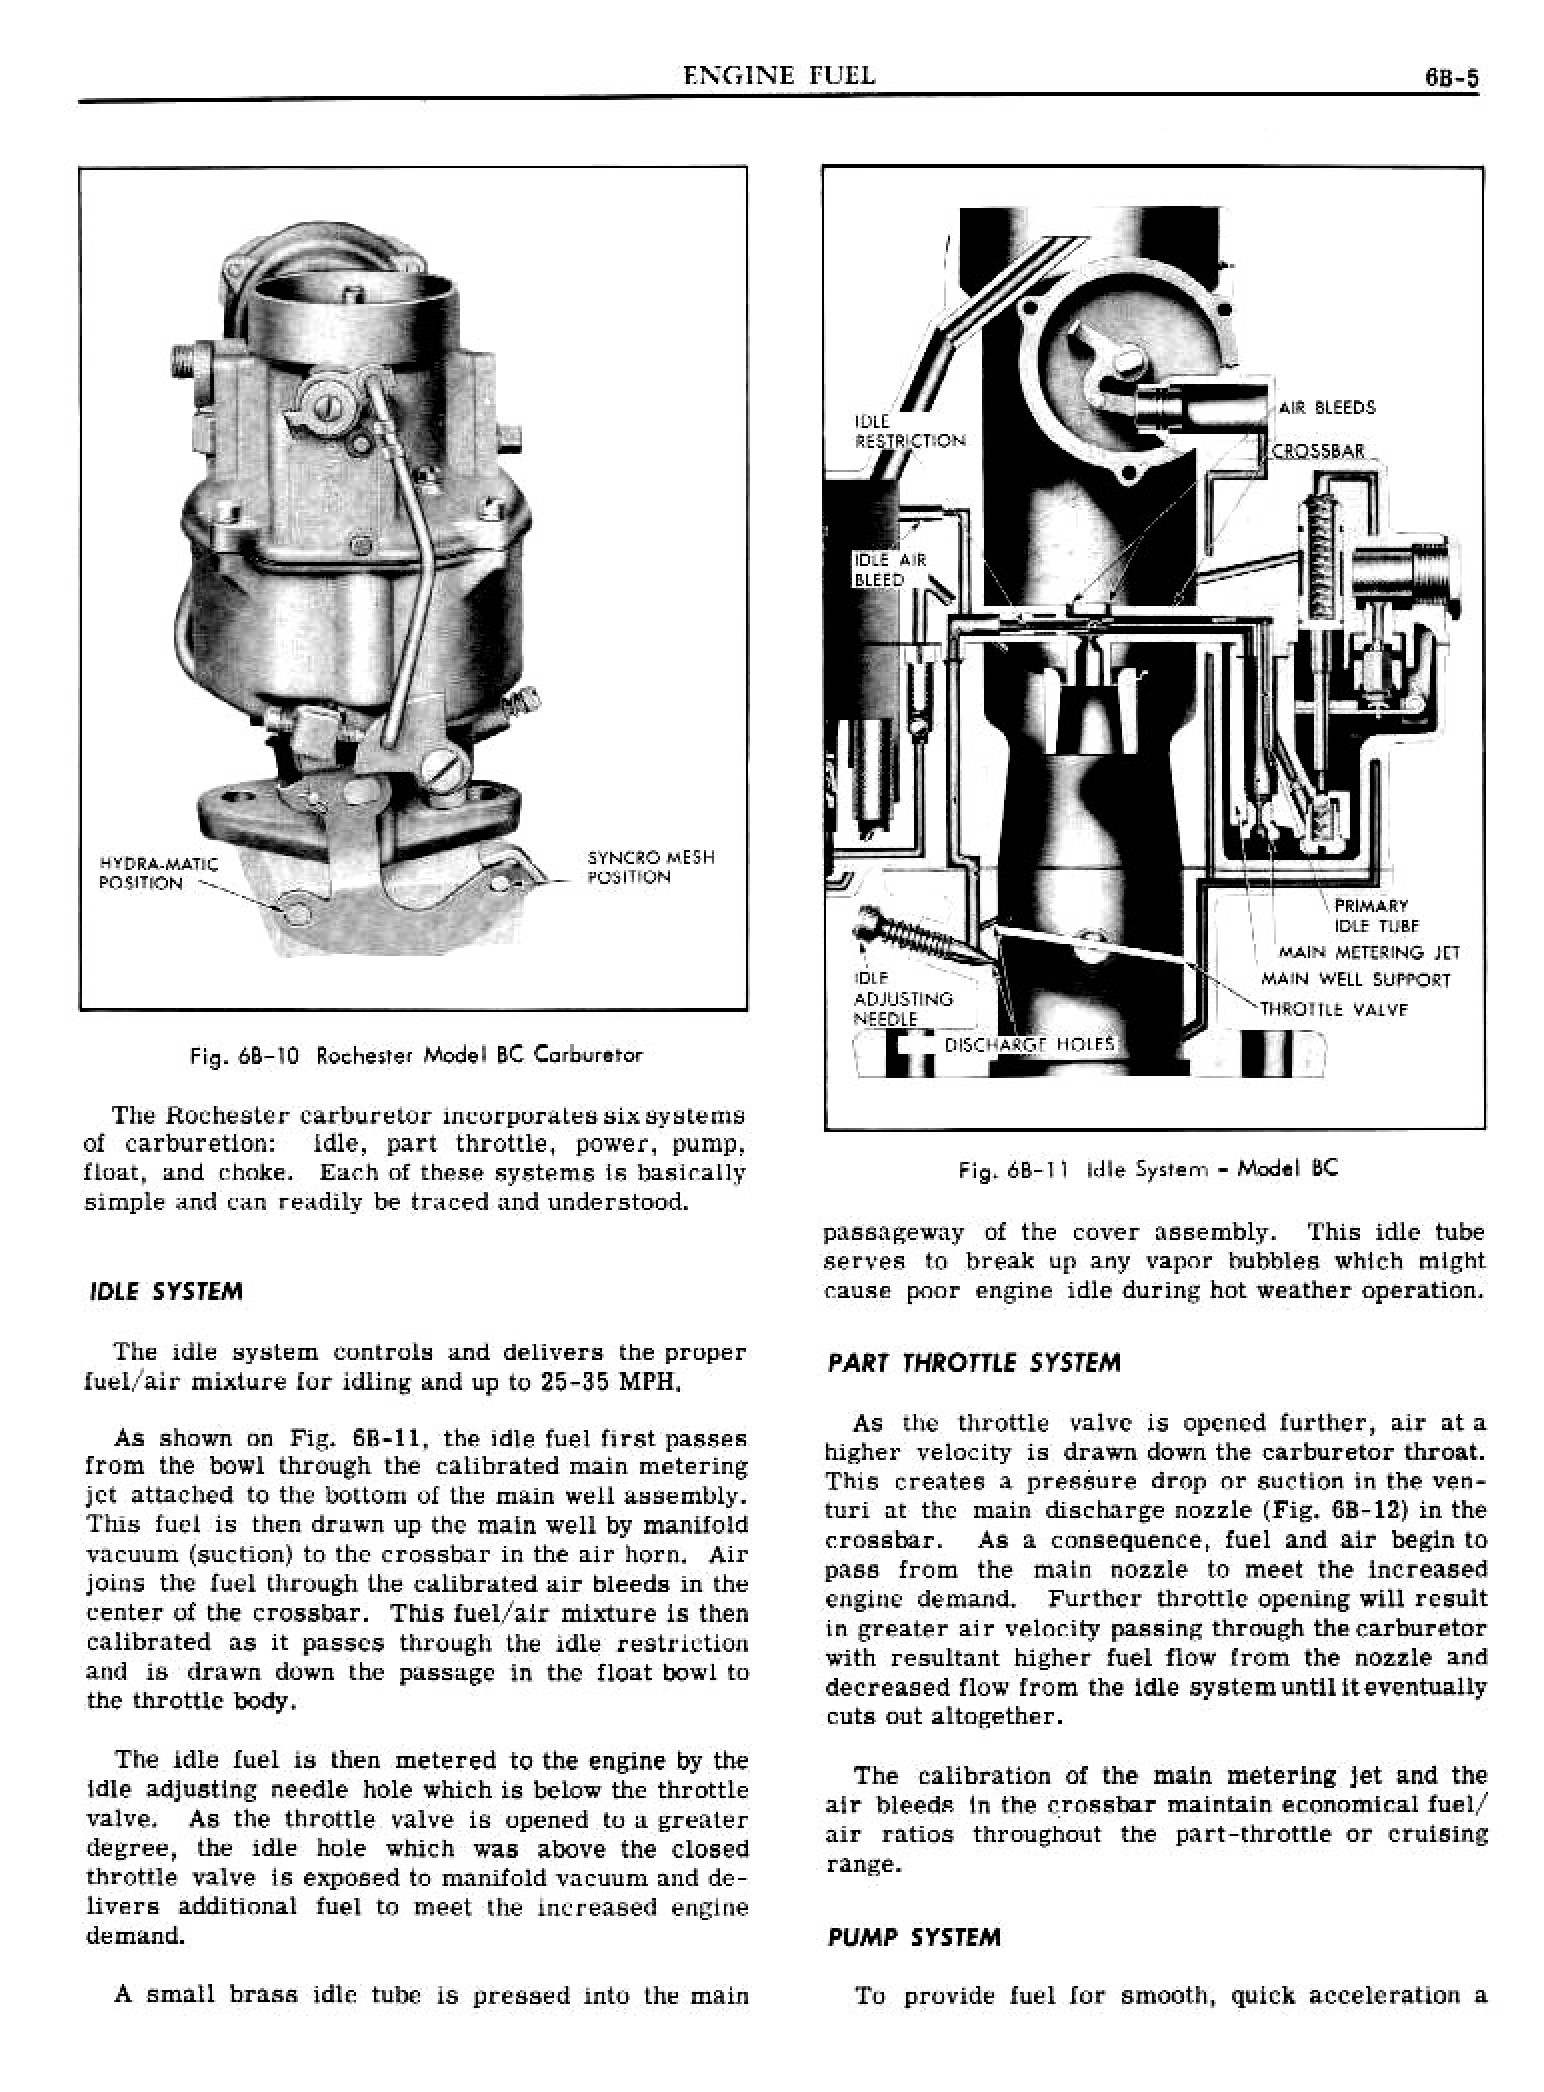 1949 Pontiac Shop Manual- Engine Fuel Page 5 of 42